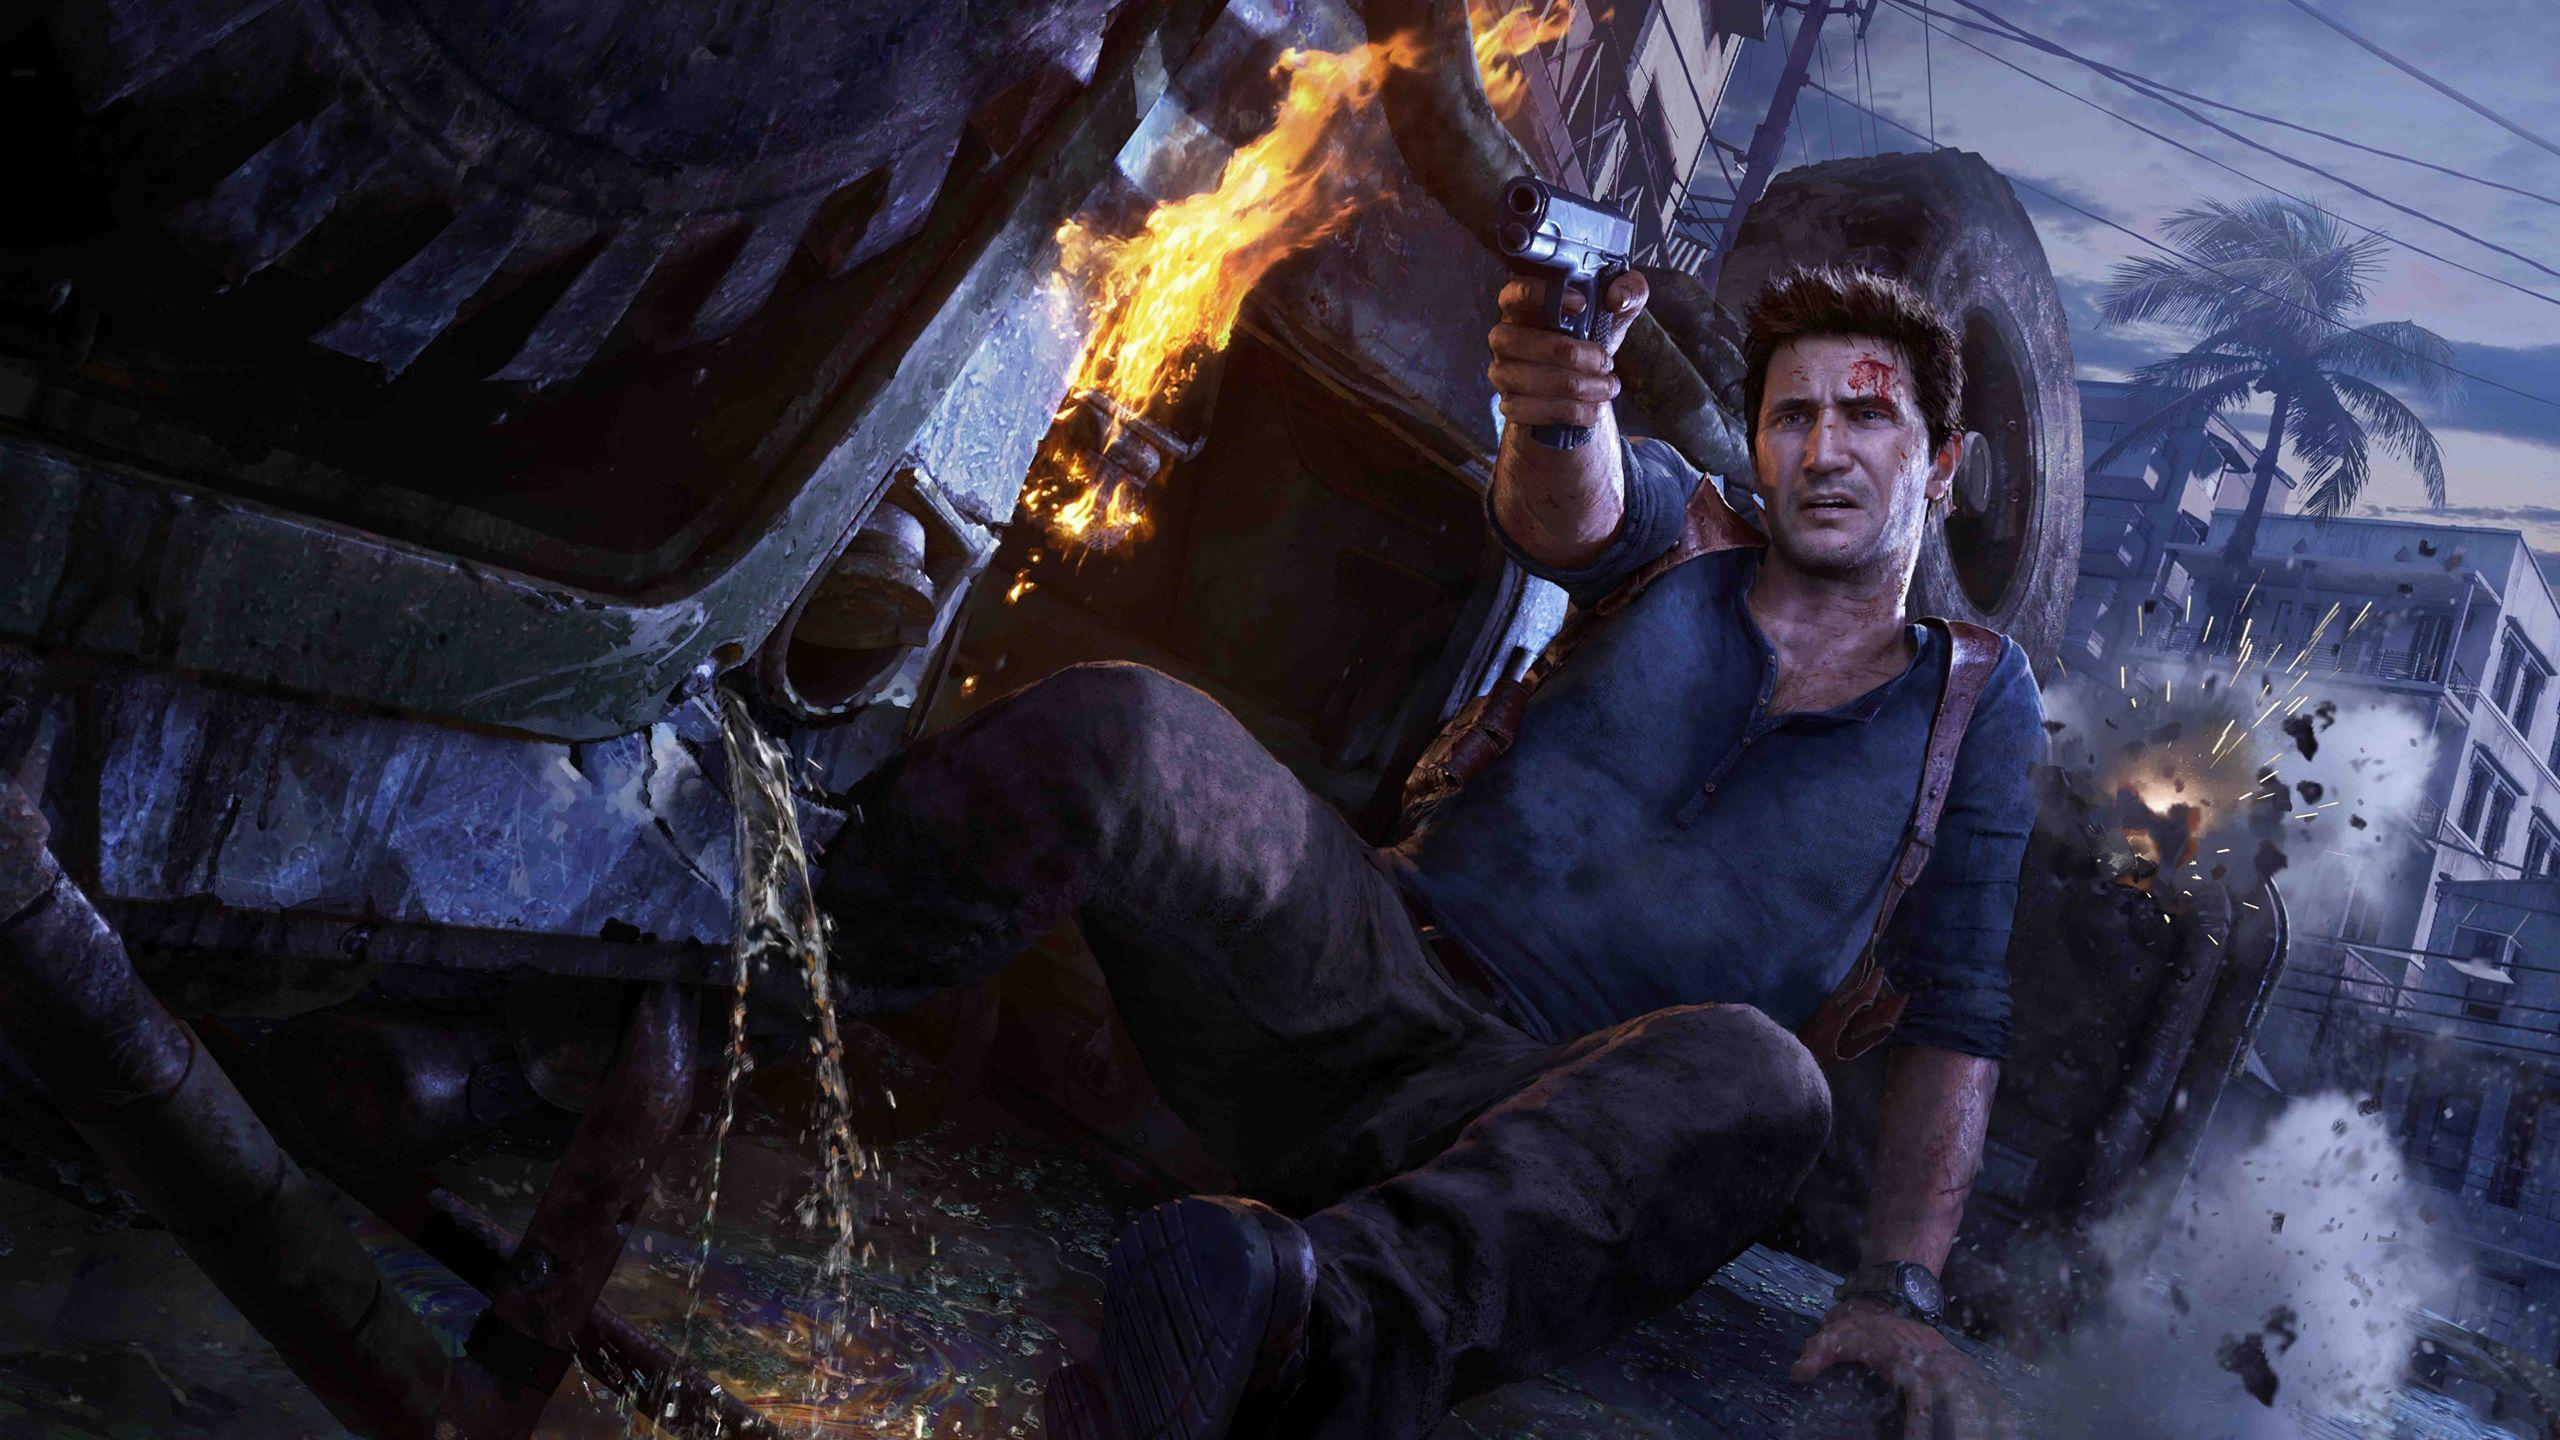 Uncharted Desktop Wallpapers Wallpaper Cave